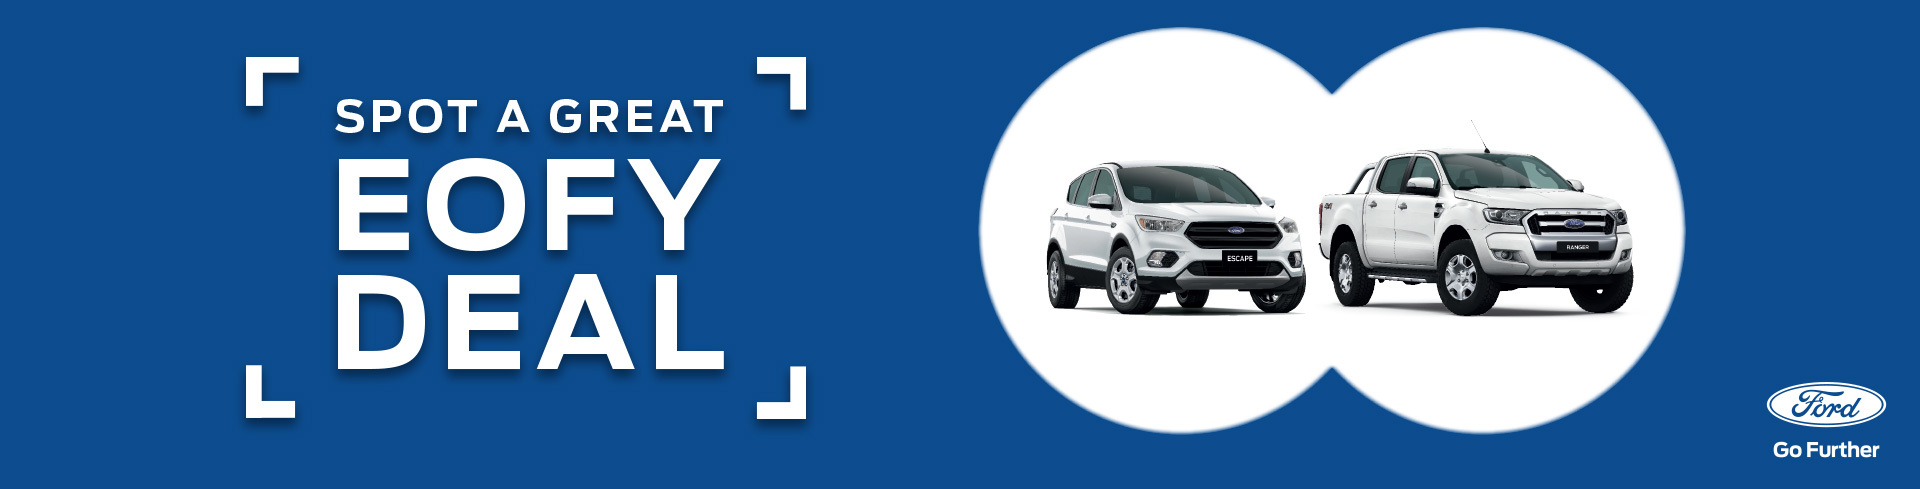 Ford - National Offer - Spot Great EOFY Deals